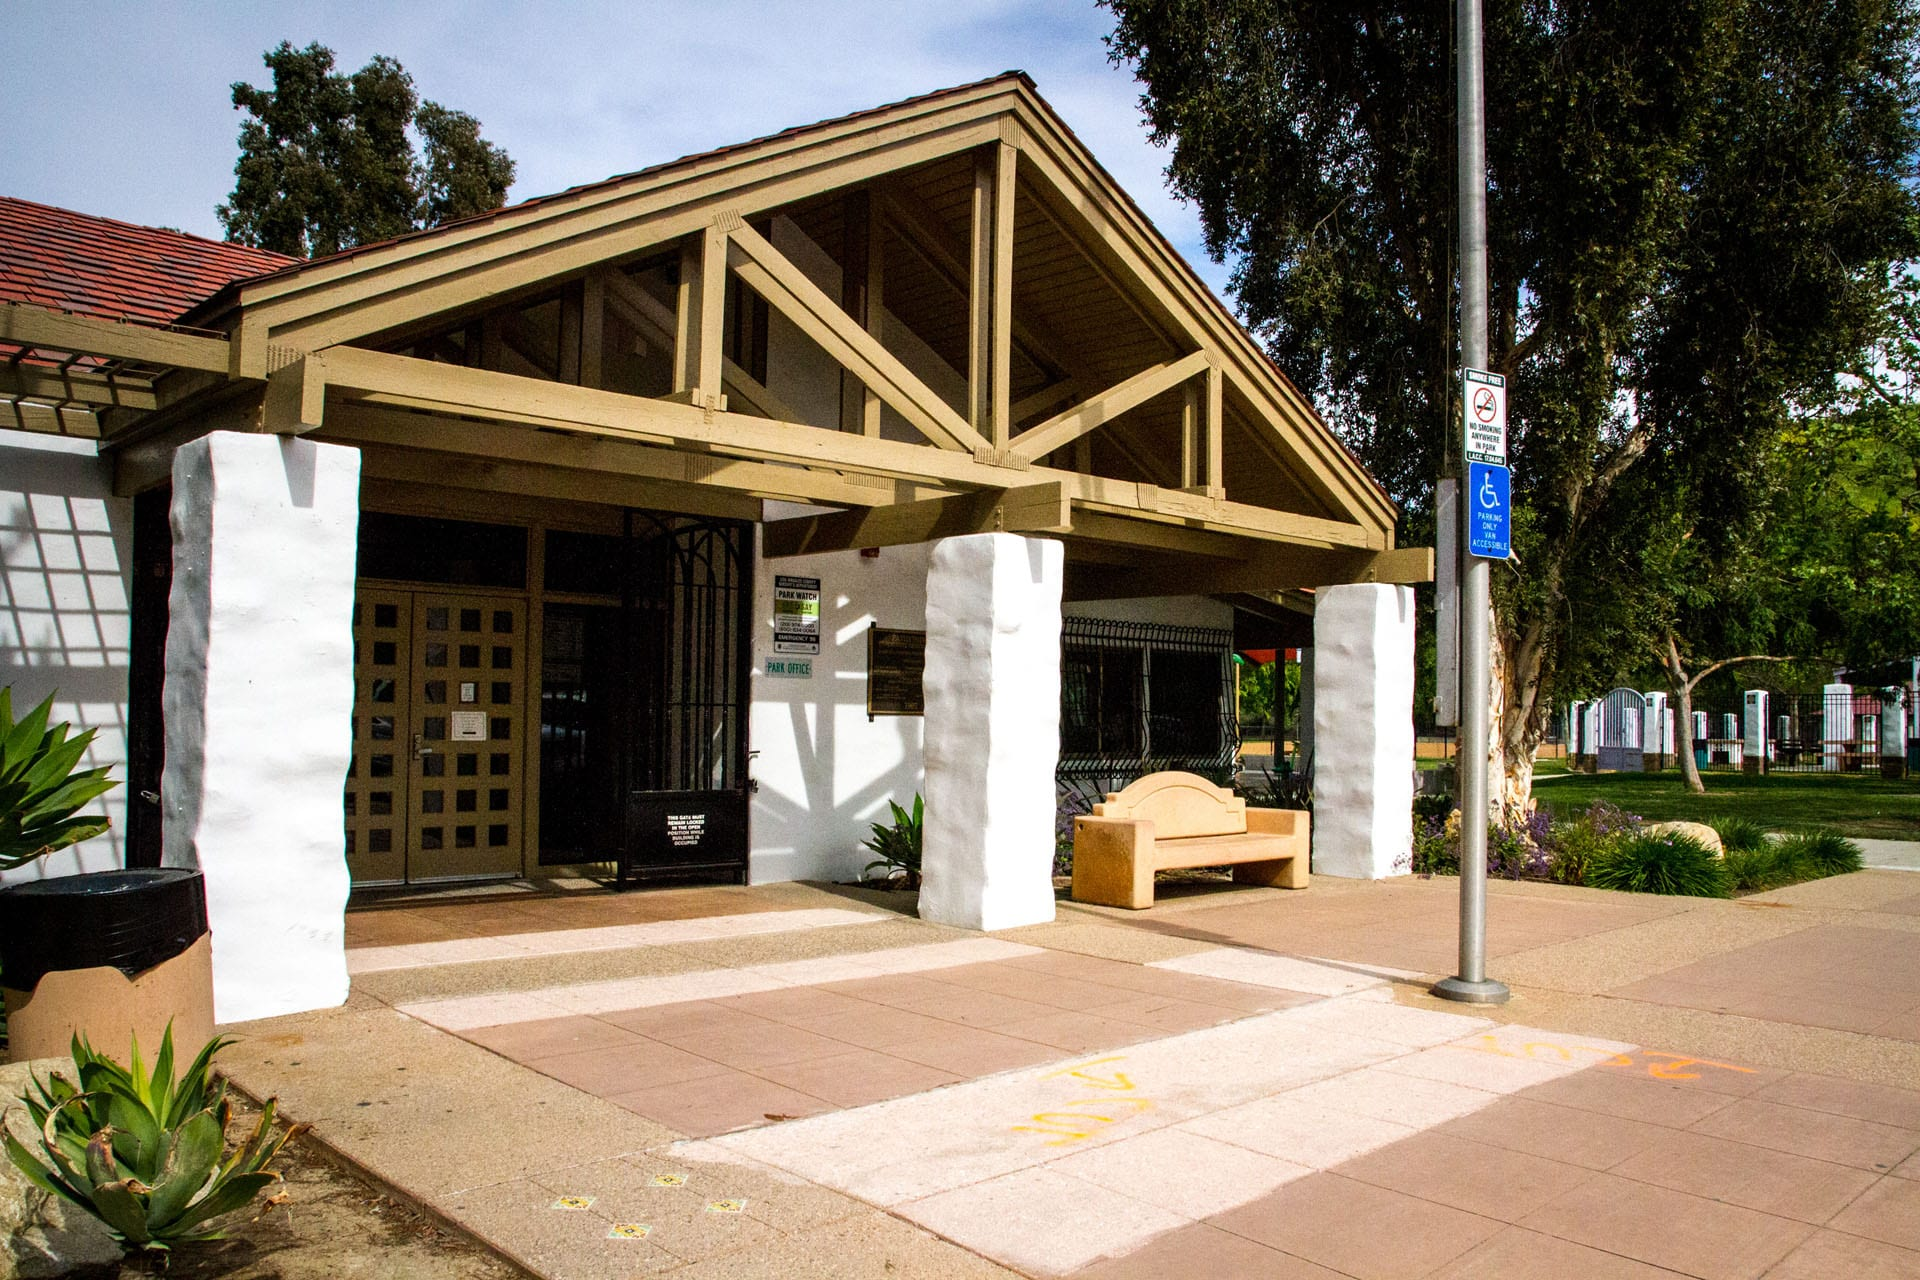 Entrance way to park office